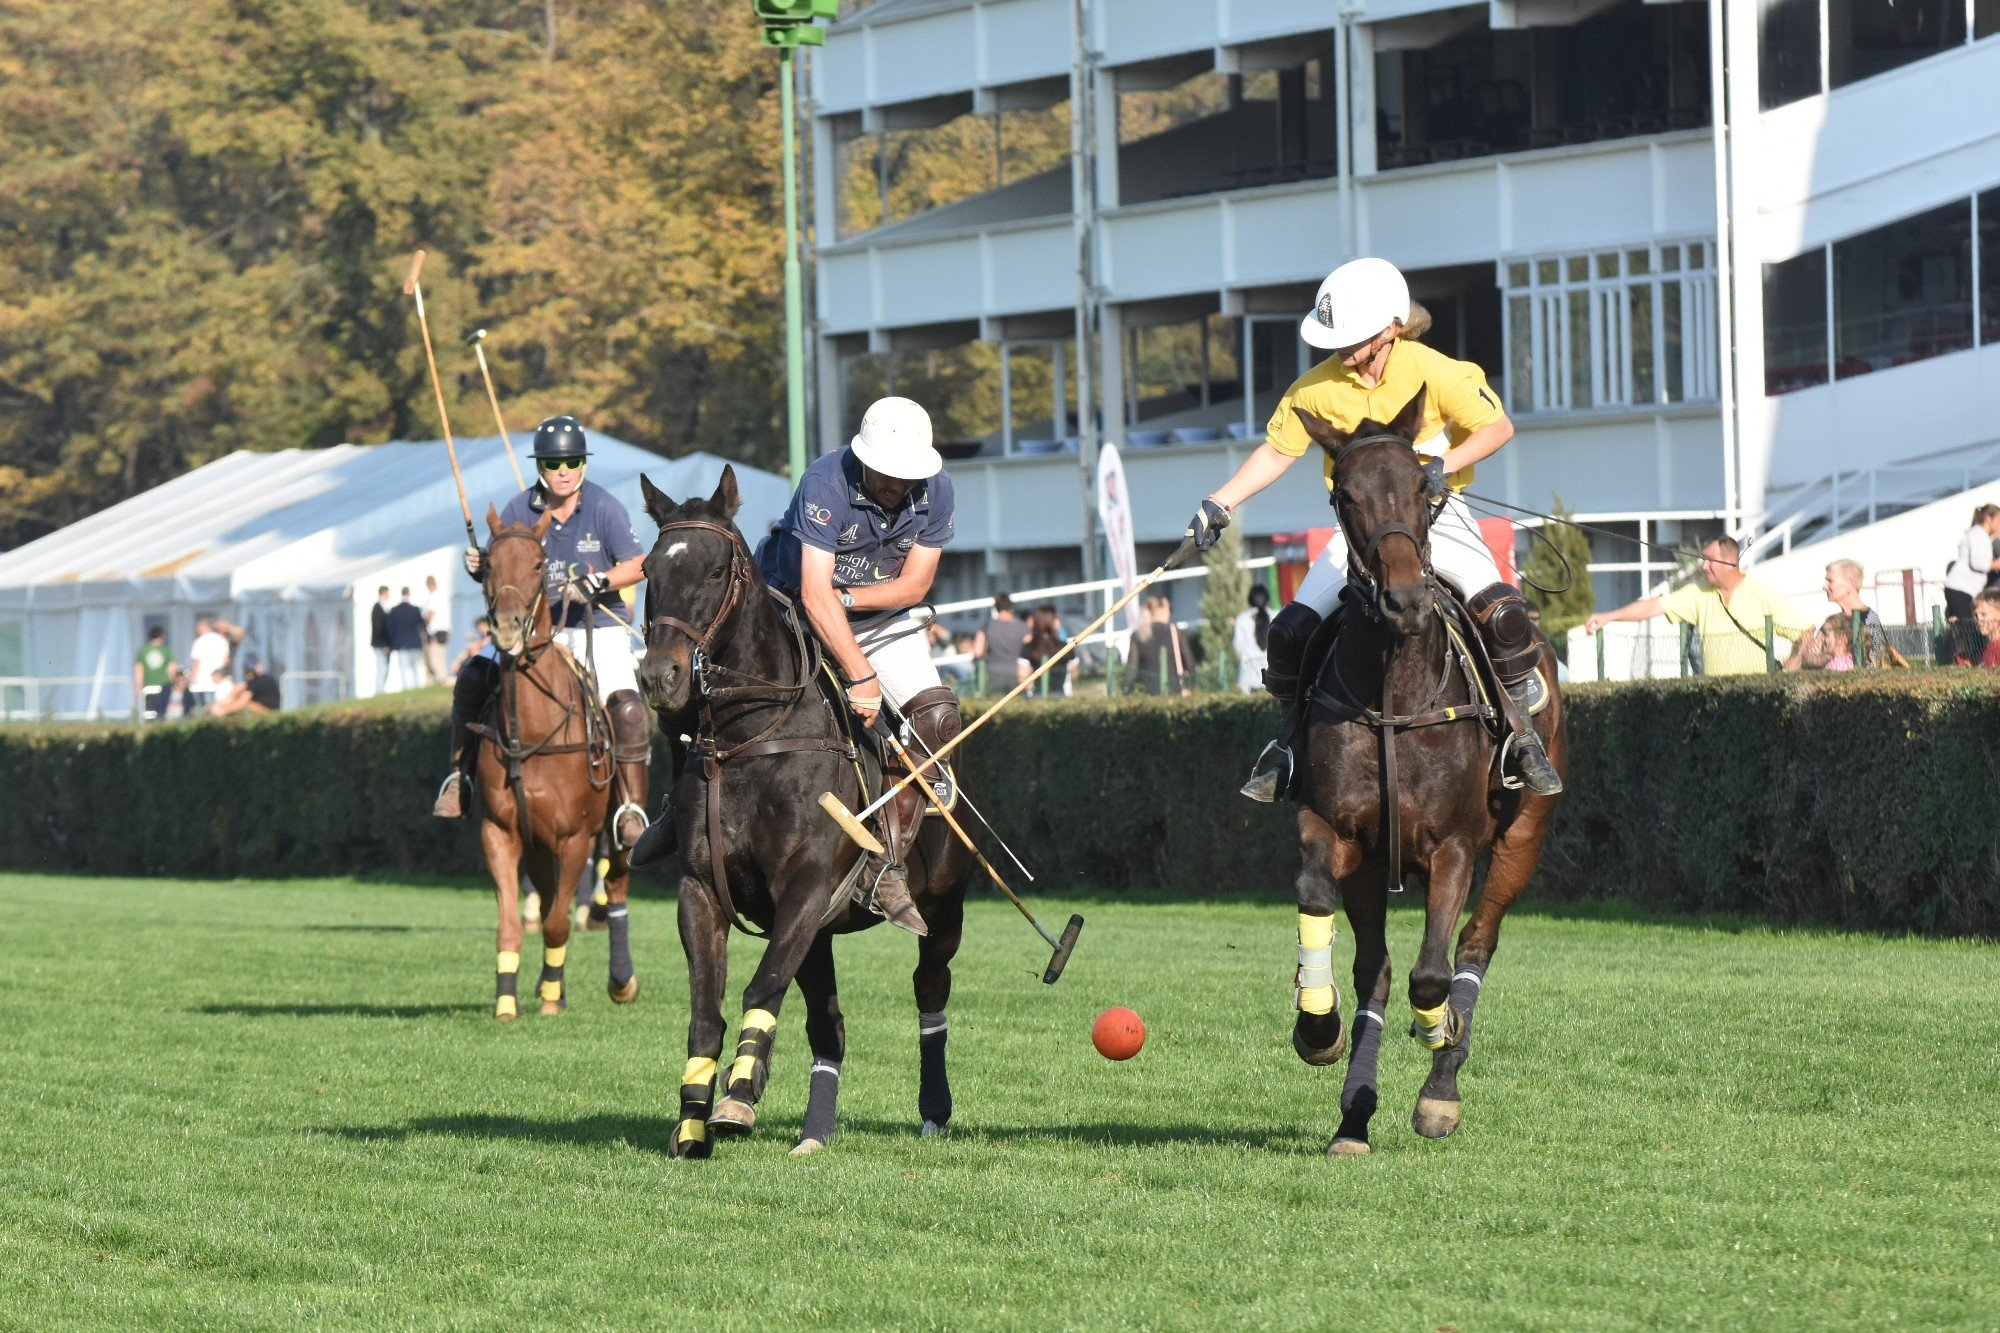 08–09/06/2019 // Gold Cup – Horse Racing Day, Taxis Polo Open Cup